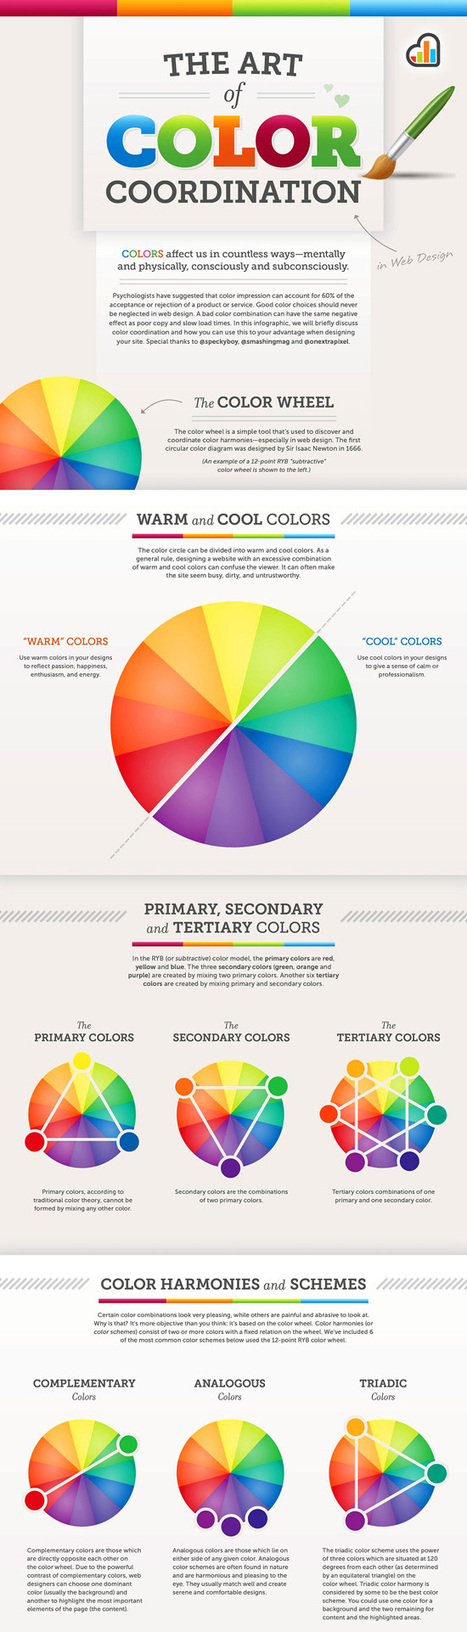 The Art of Color Coordination | Web Design | Scoop.it